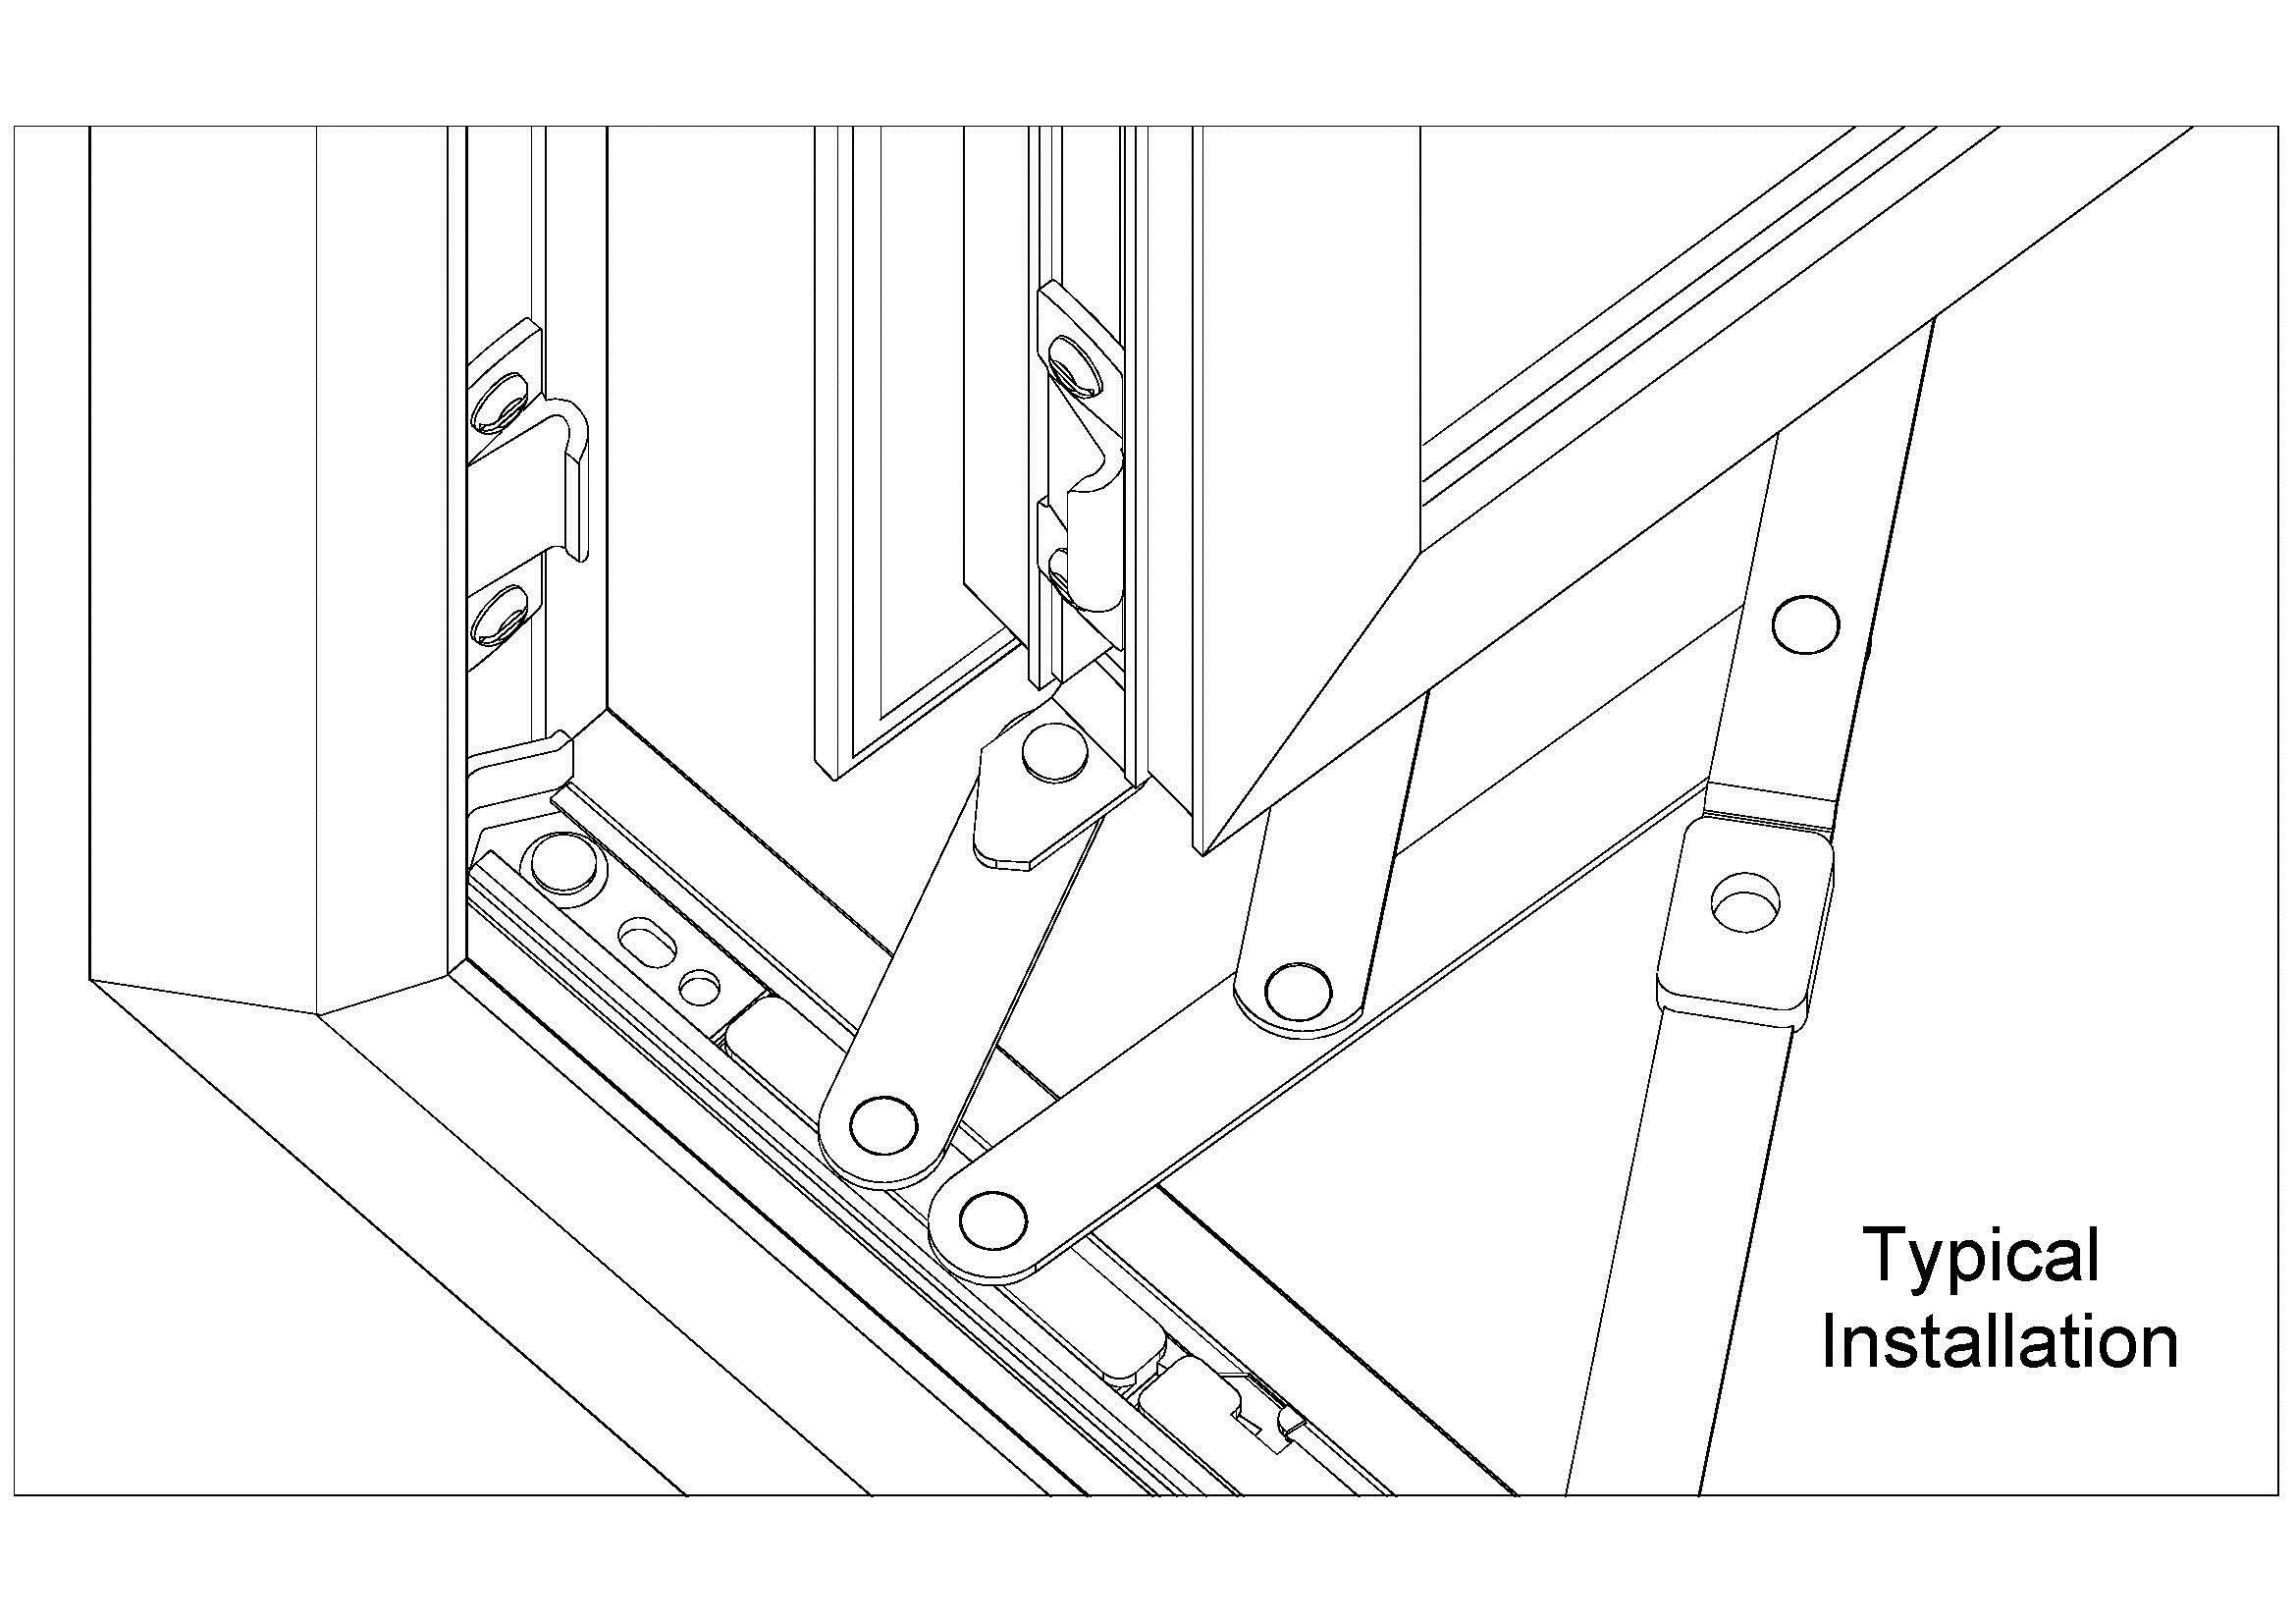 D77 Typical X-tra Bolt on Window Installation drawing jpeg